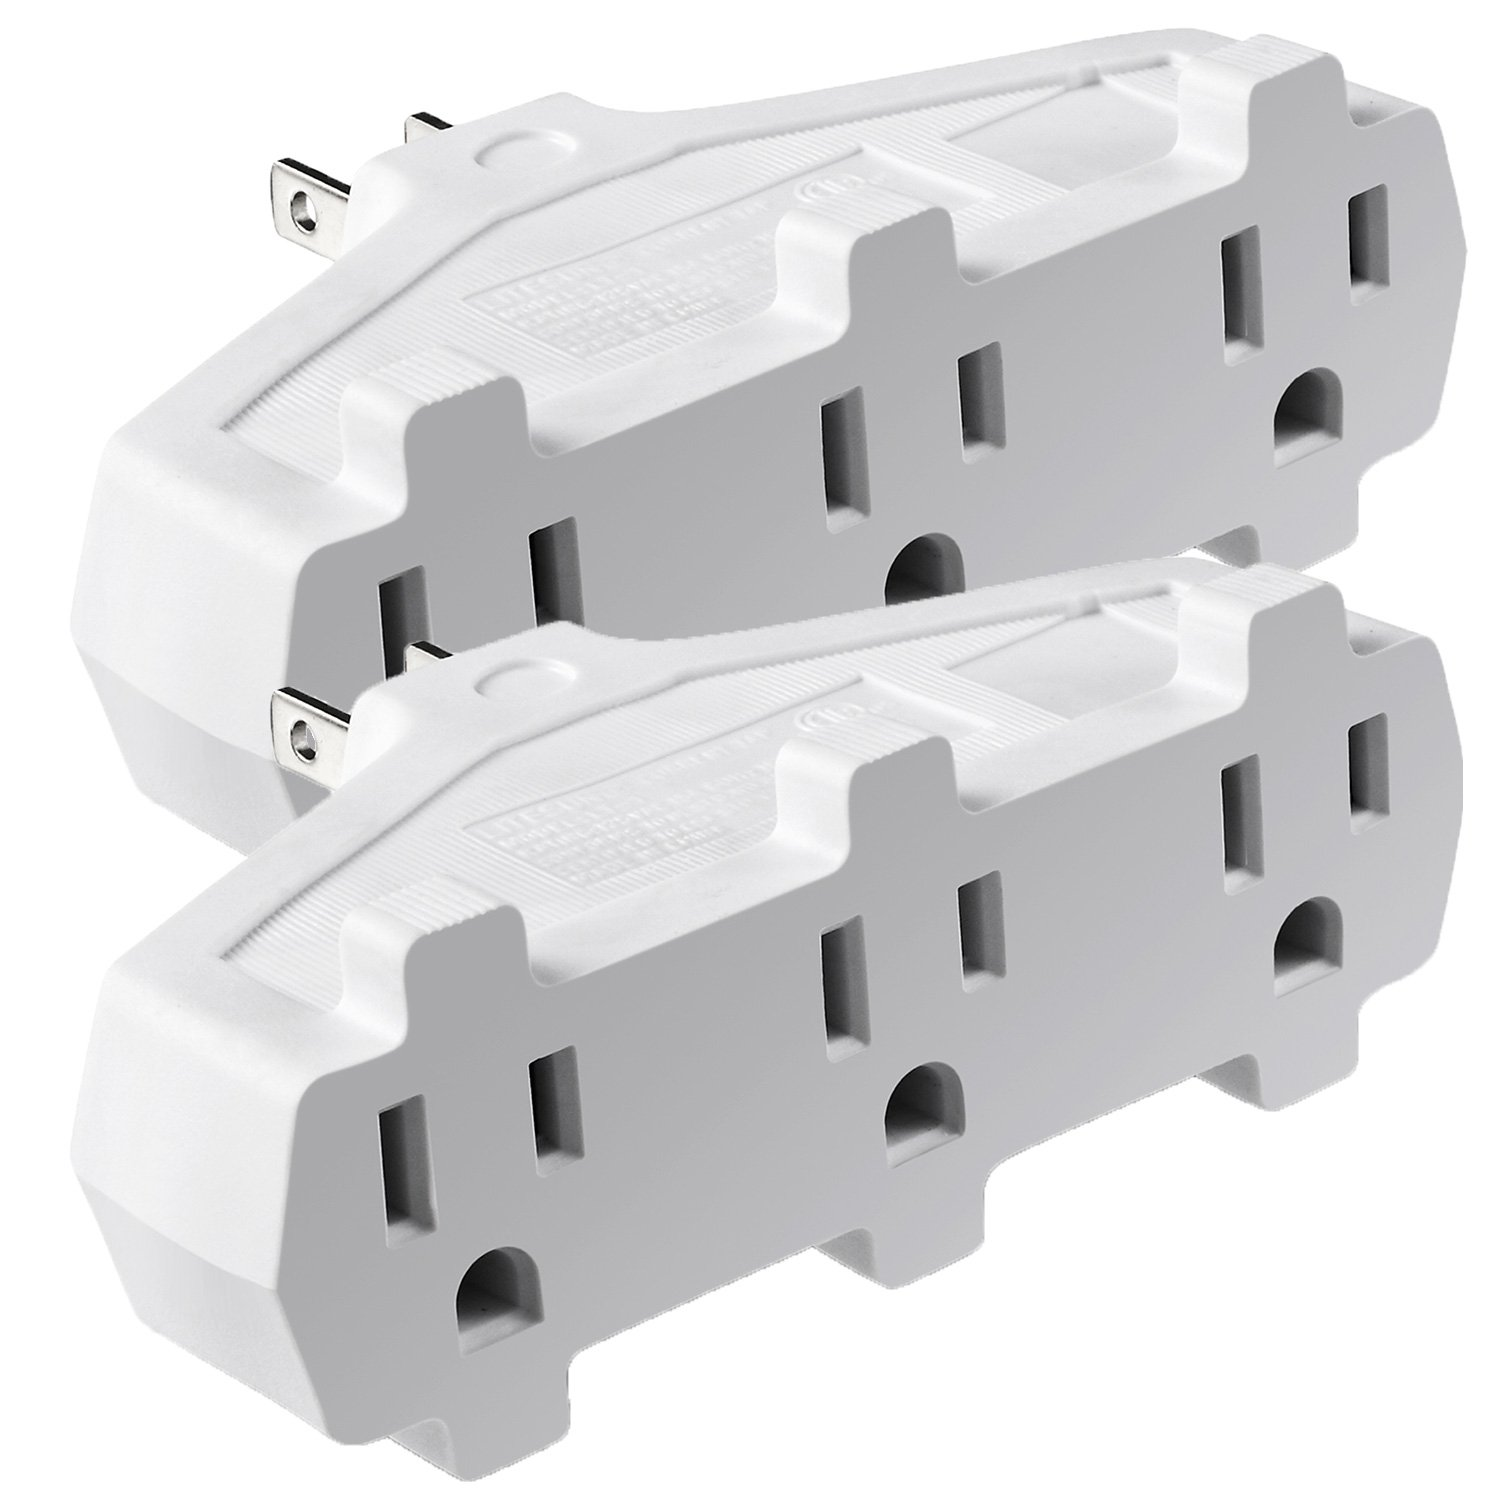 3 Outlet Wall Adapter Tap (2 Pack), Fosmon 3-Prong Grounded Indoor AC Mini Plug, ETL Listed with Phone Charging Station Holder - White